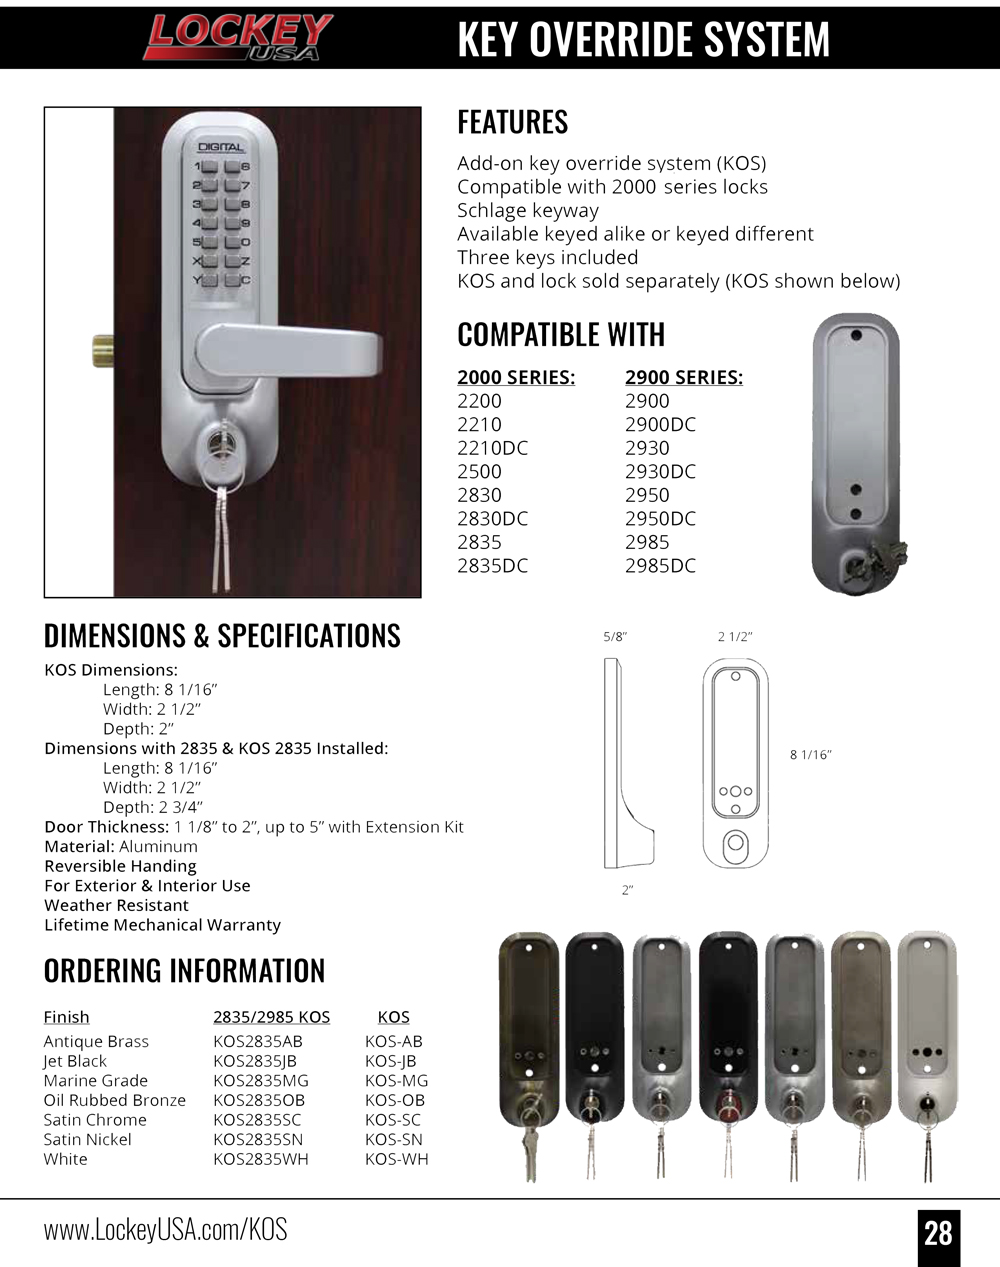 Lockey KOS Add-On Key Override System